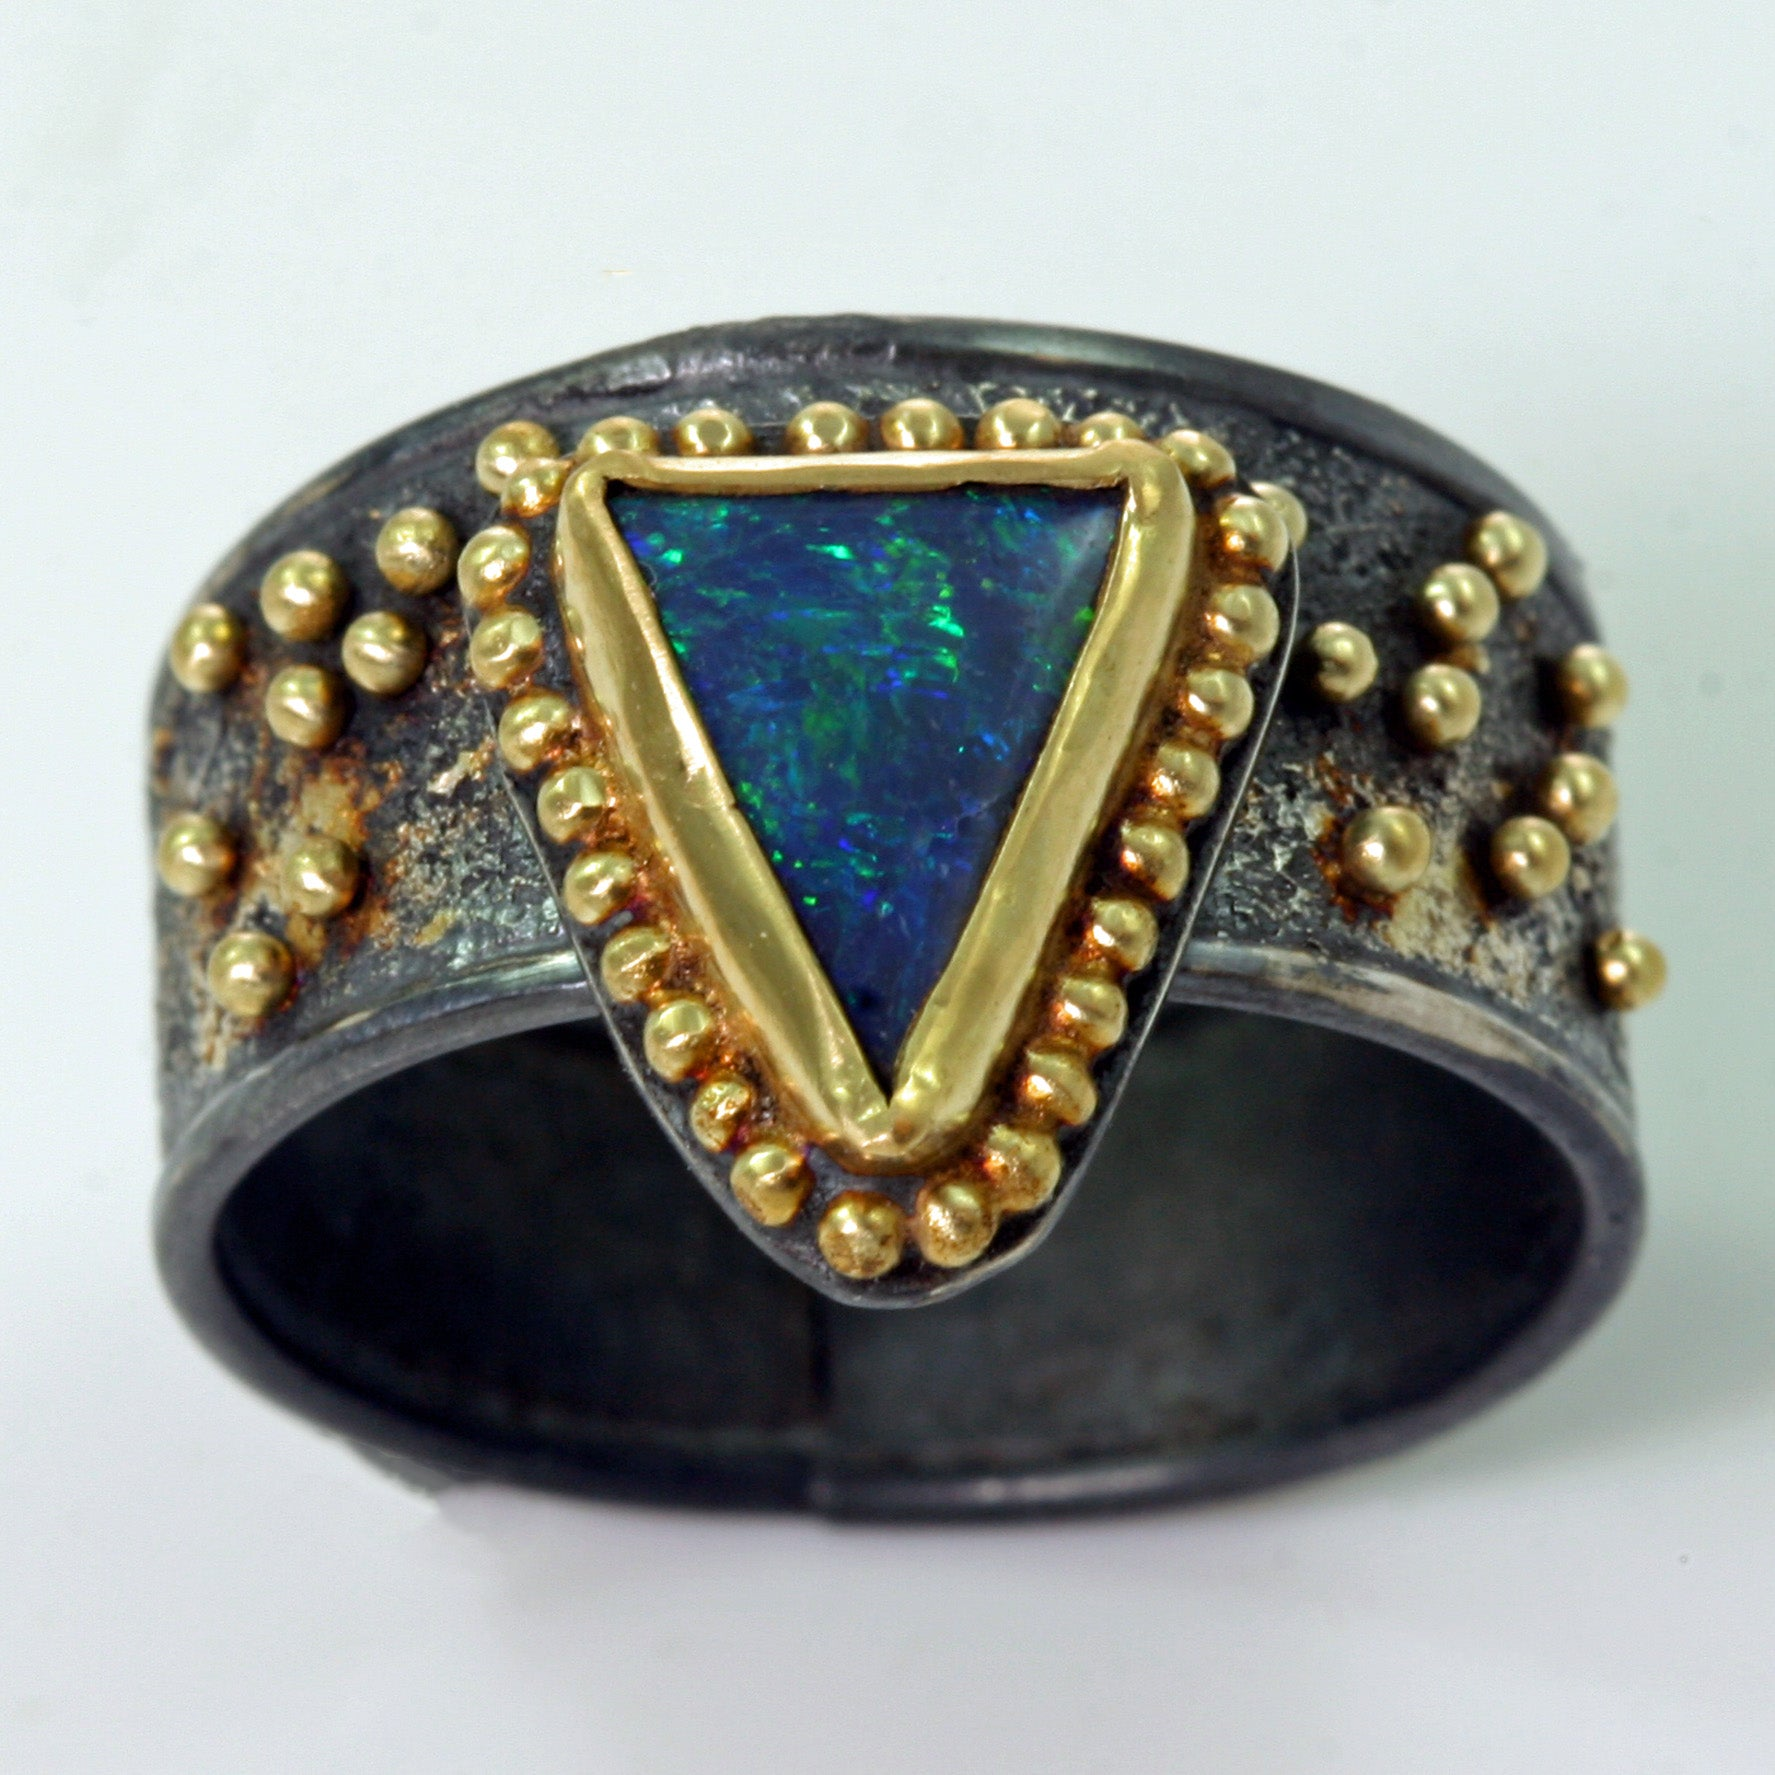 Once In A Blue Moon Ring - Boulder Opal - 18k Gold  - Size 8.5